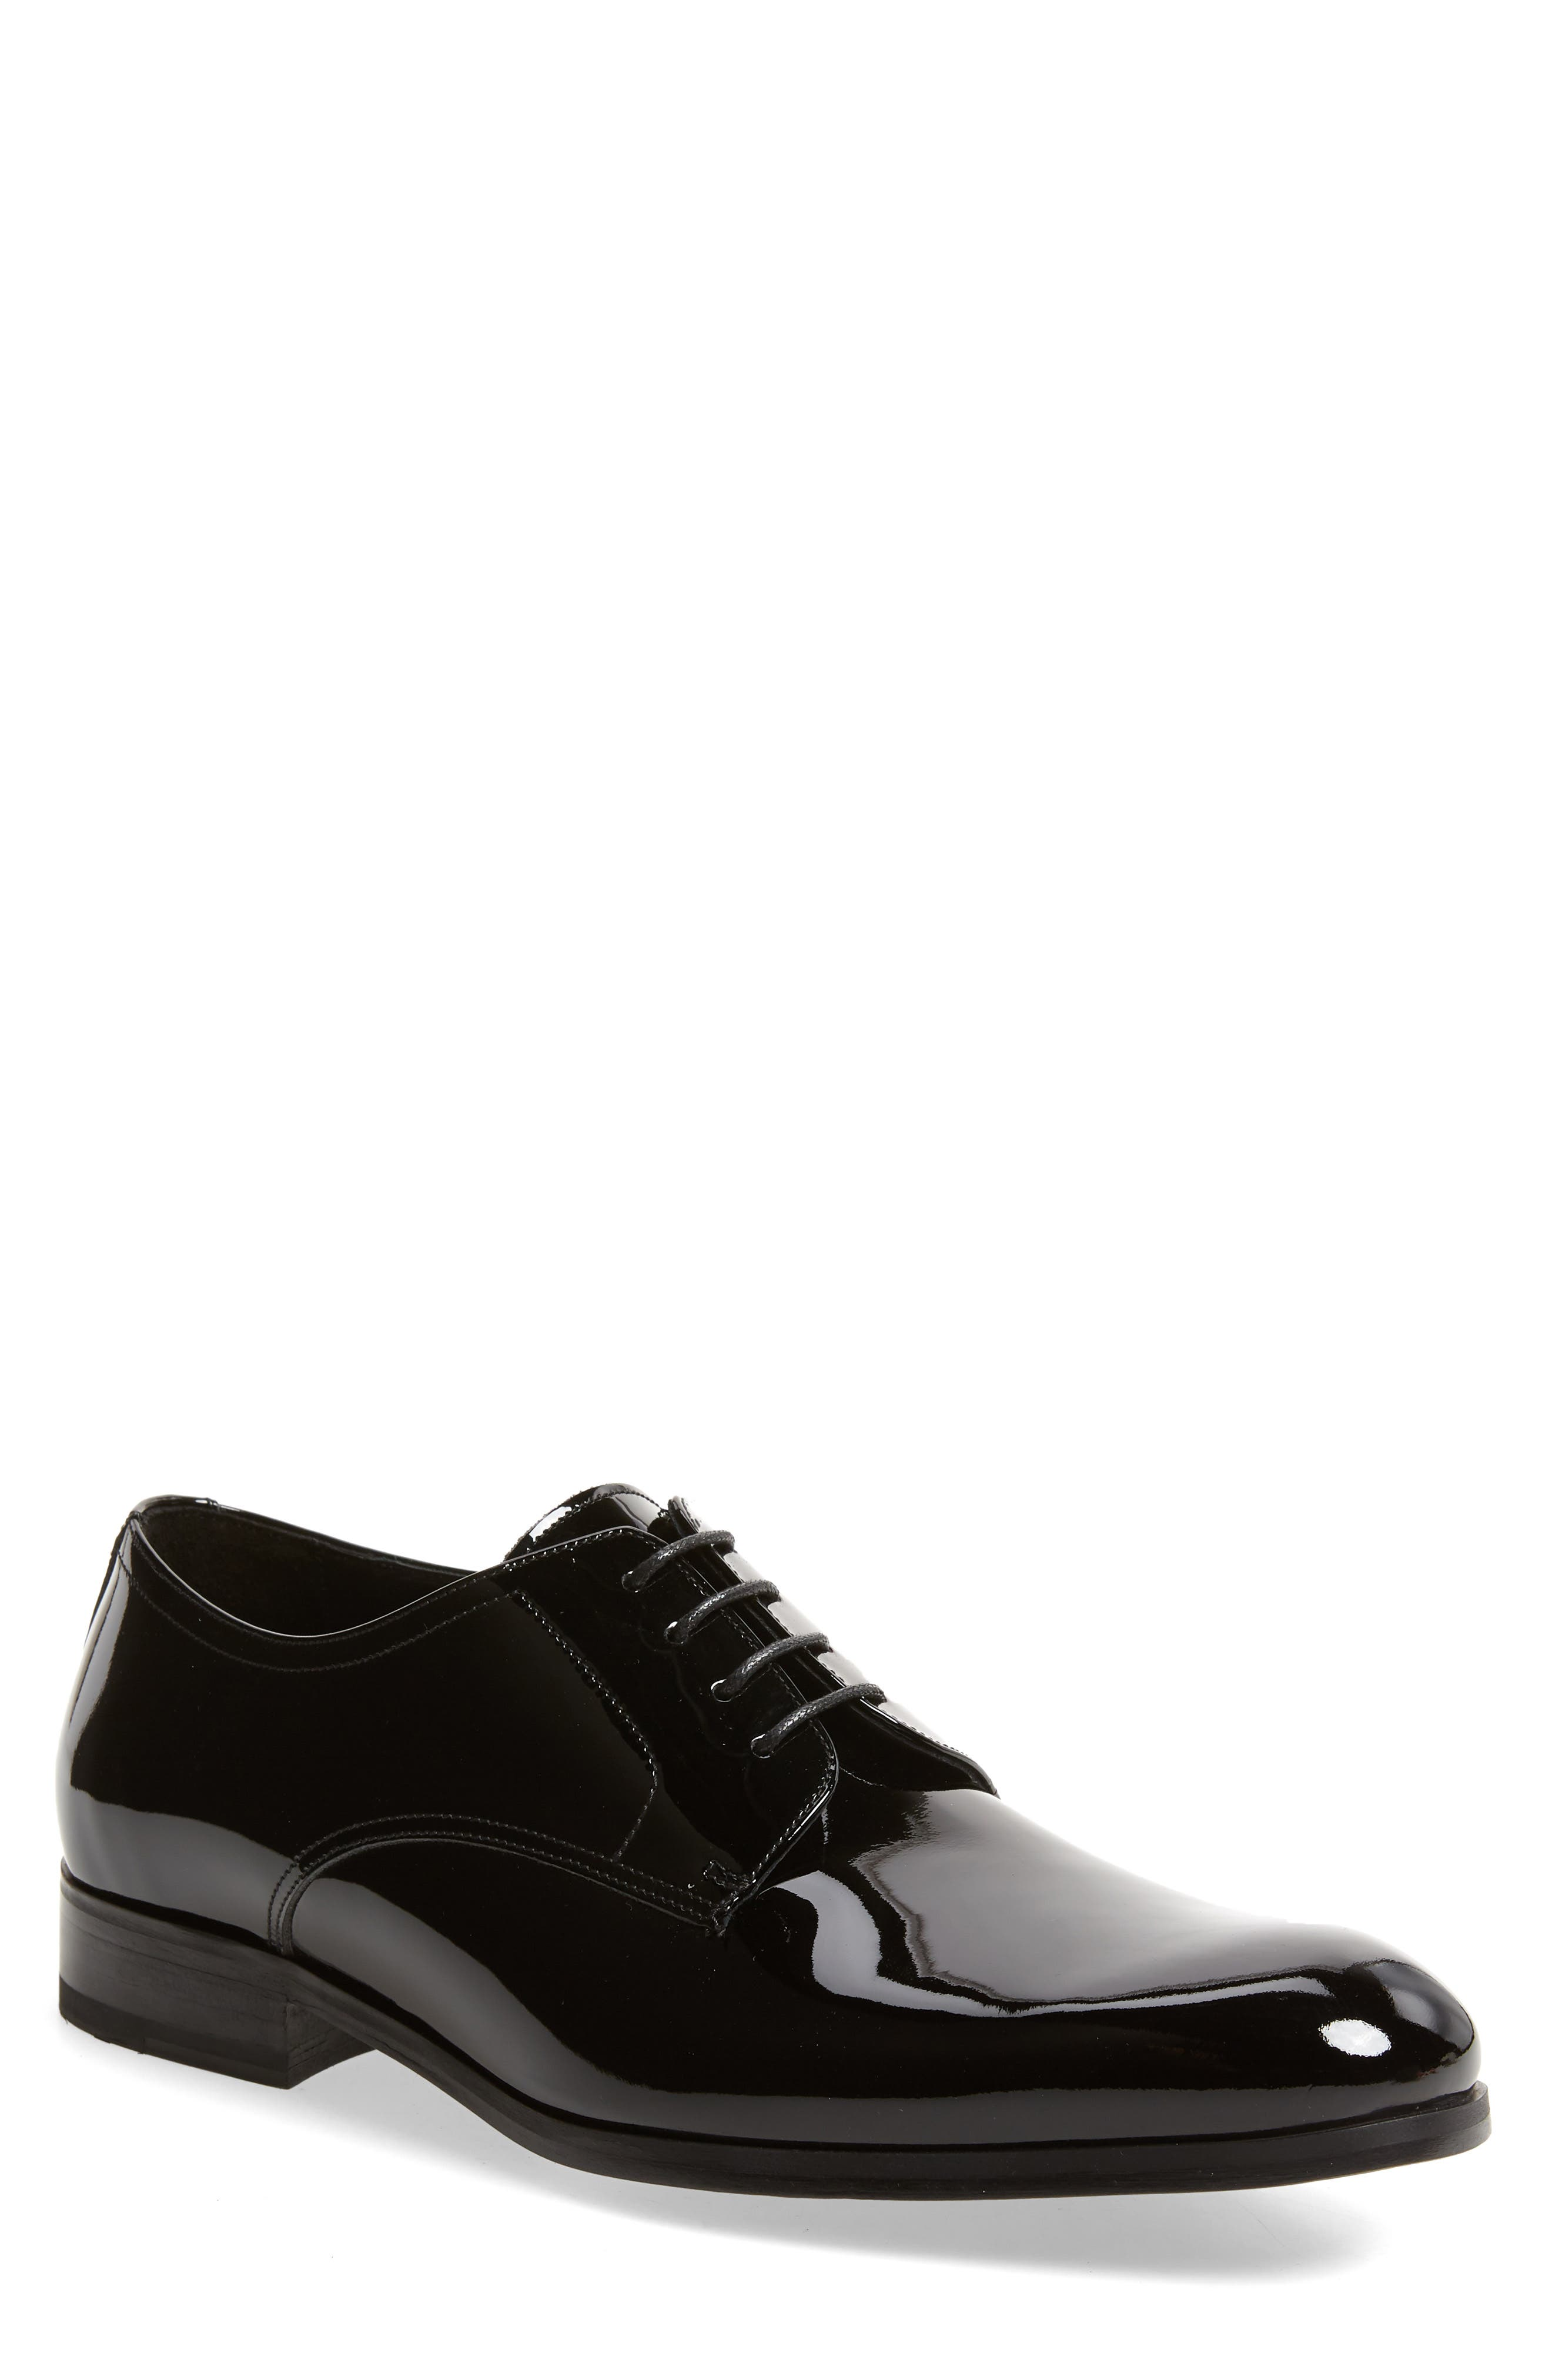 To Boot New York Aalborg Plain Toe Derby, Black